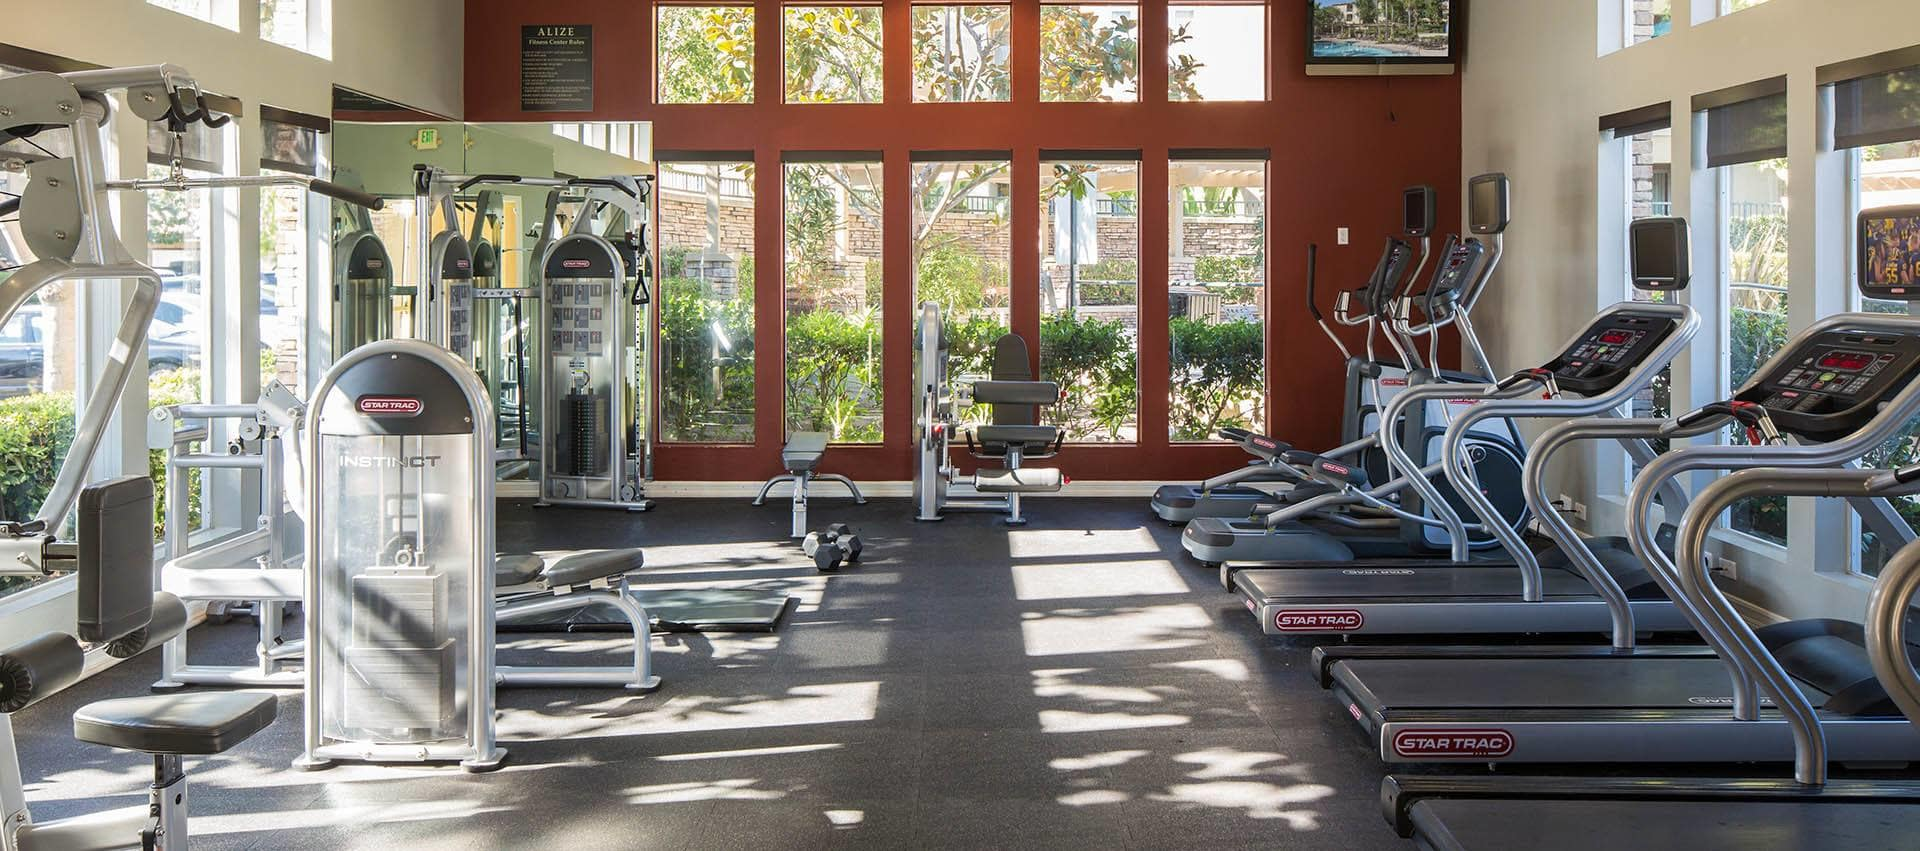 Well Equipped Fitness Center in Alize at Aliso Viejo Apartment Homes in Aliso Viejo, California